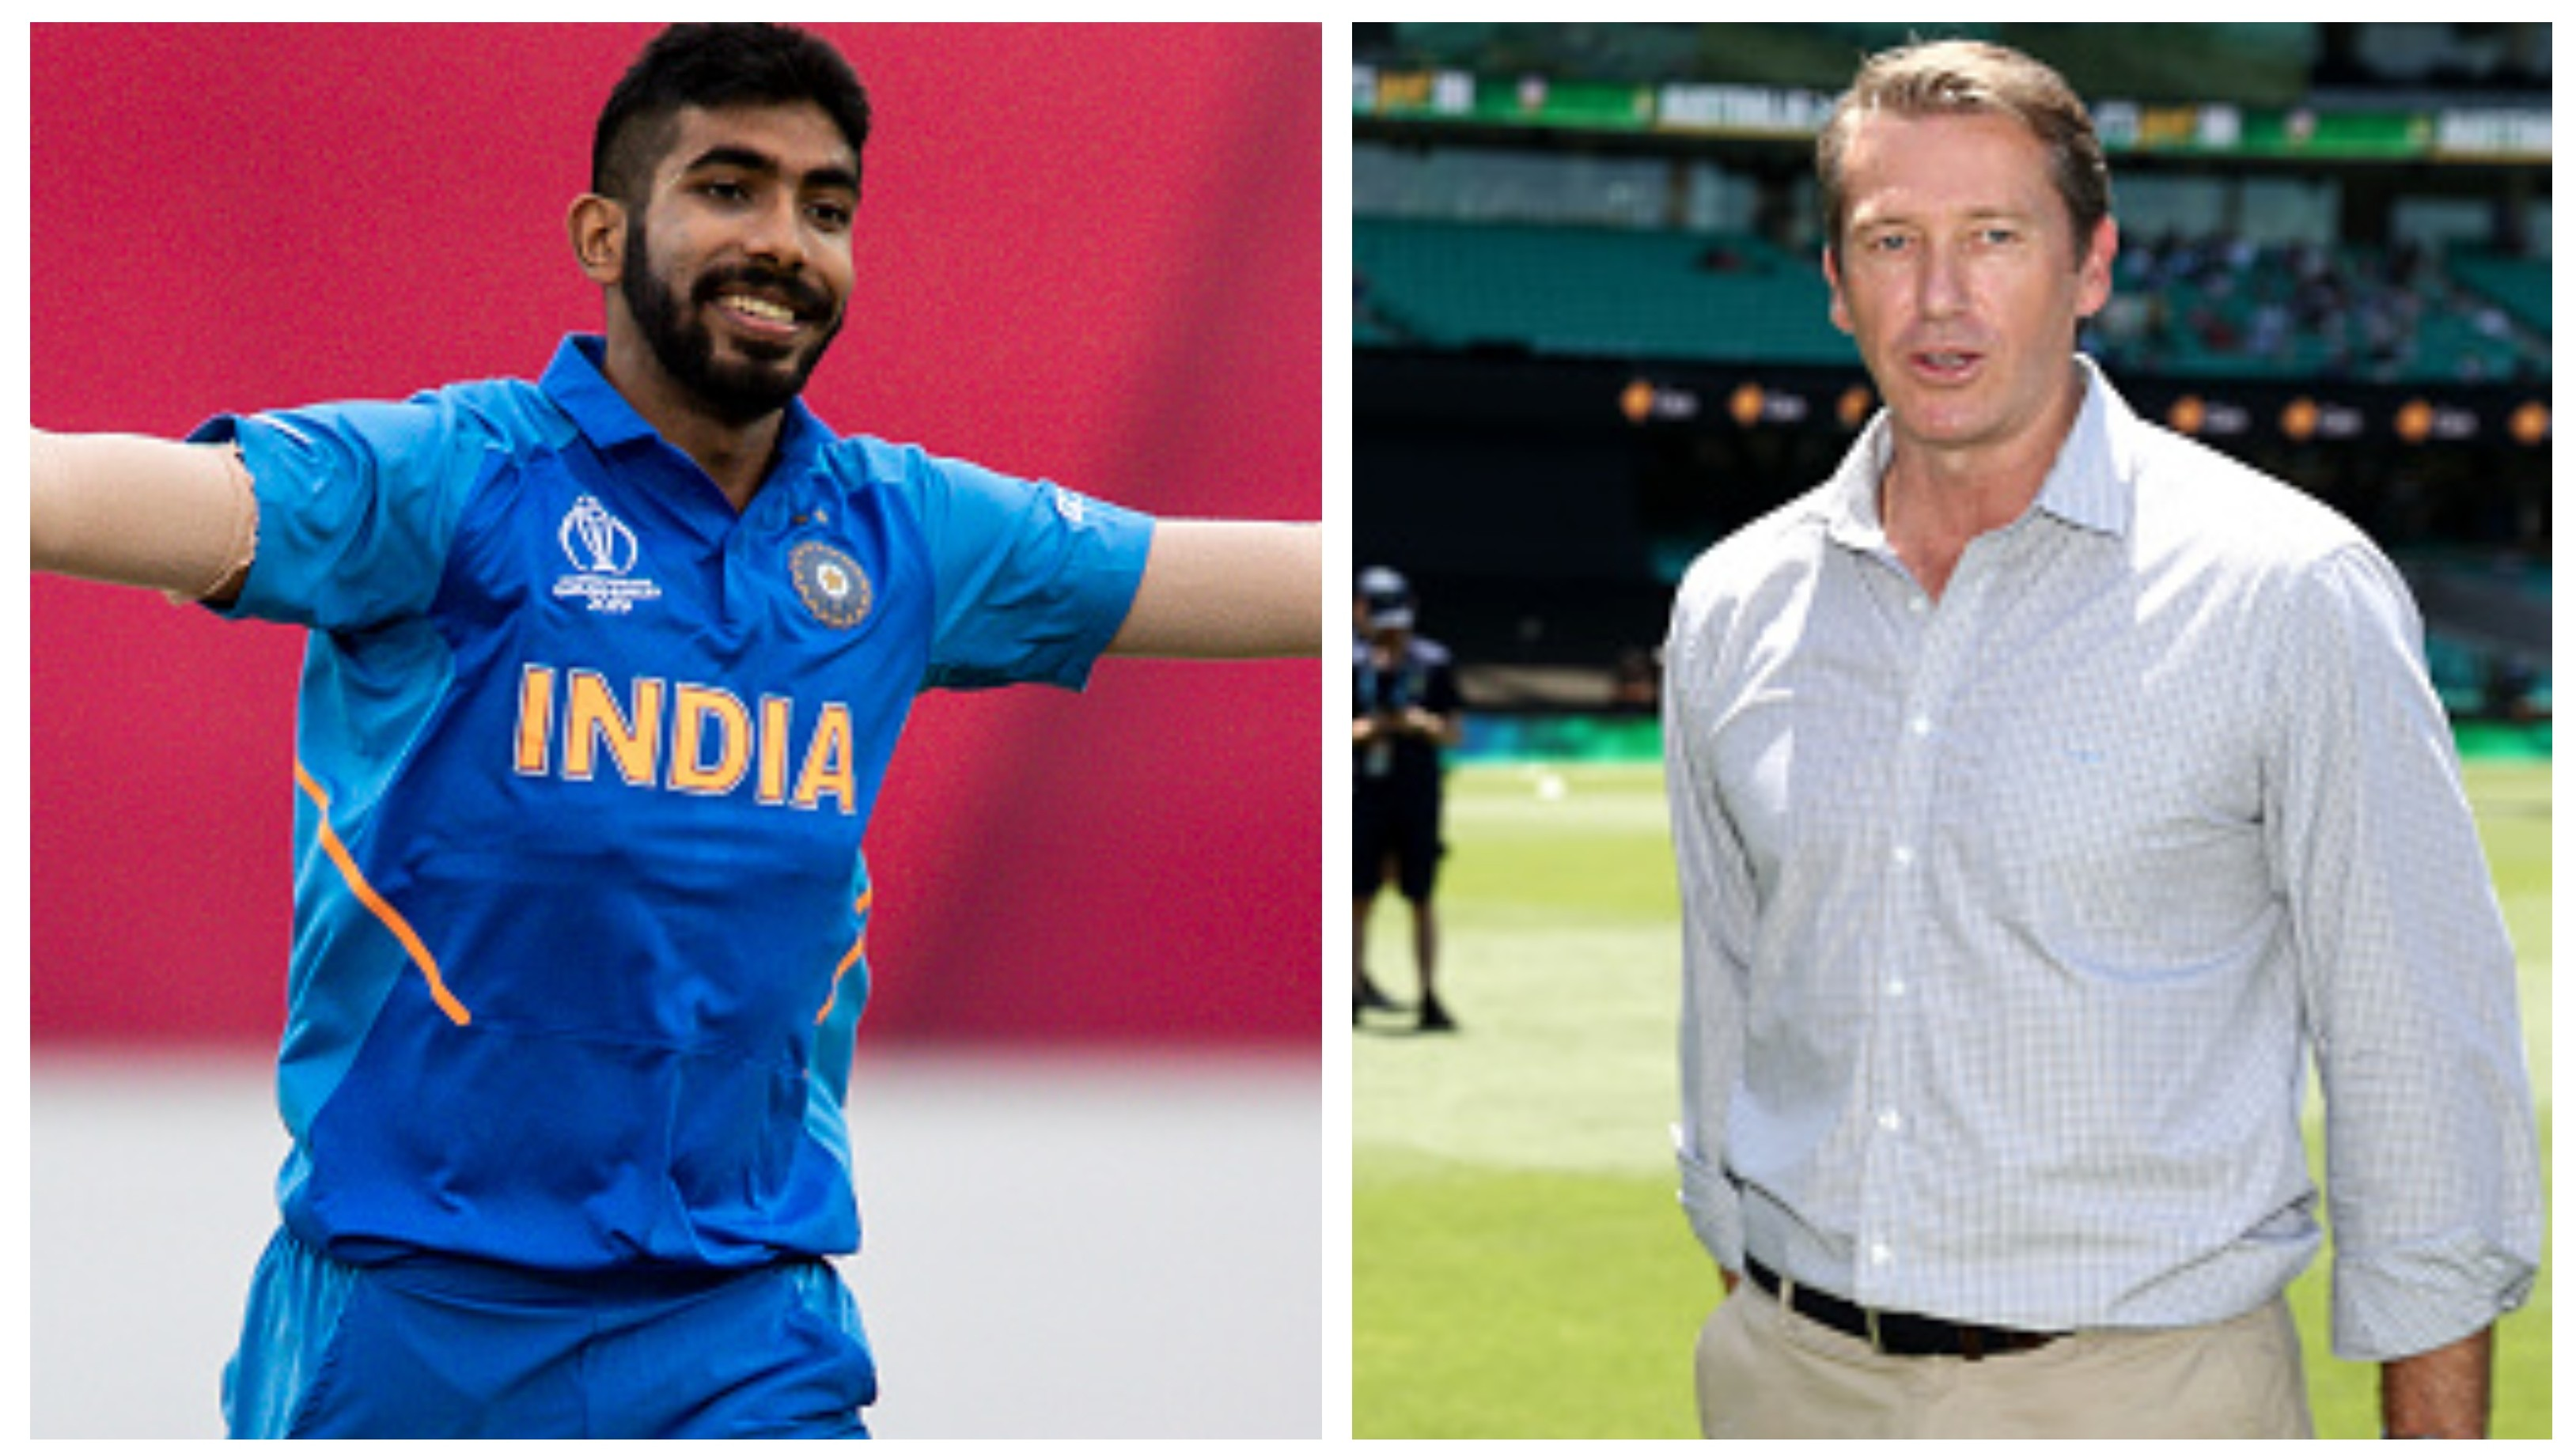 CWC 2019: Glenn McGrath hails Jasprit Bumrah on his World Cup performances